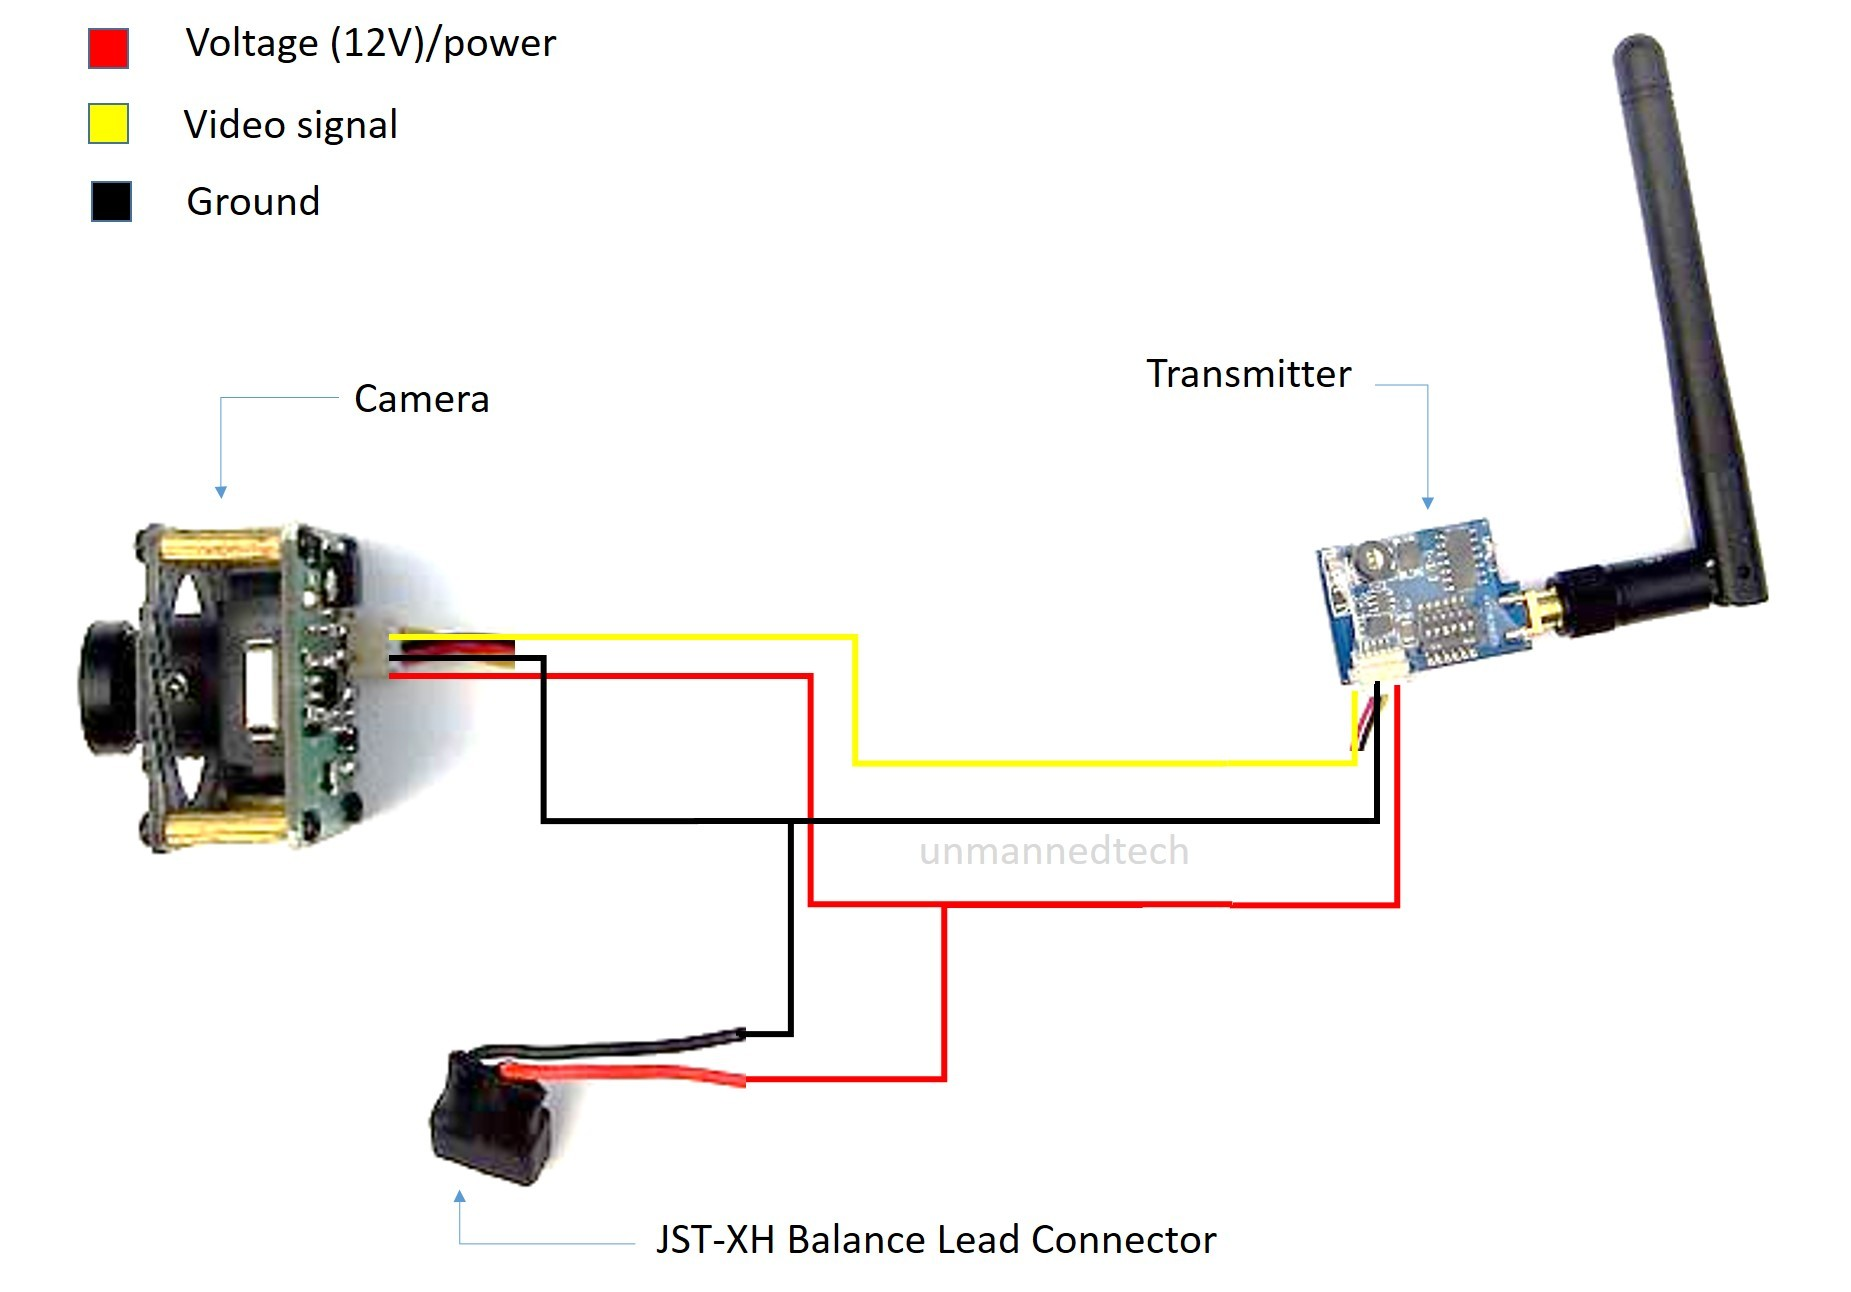 Beginners Guide On How To Build A Mini Fpv 250 Quadcopter Using The. Camera To Video Transmitter Wiring1851x1292 145 Kb. Wiring. Drone Led Wiring Diagram At Scoala.co